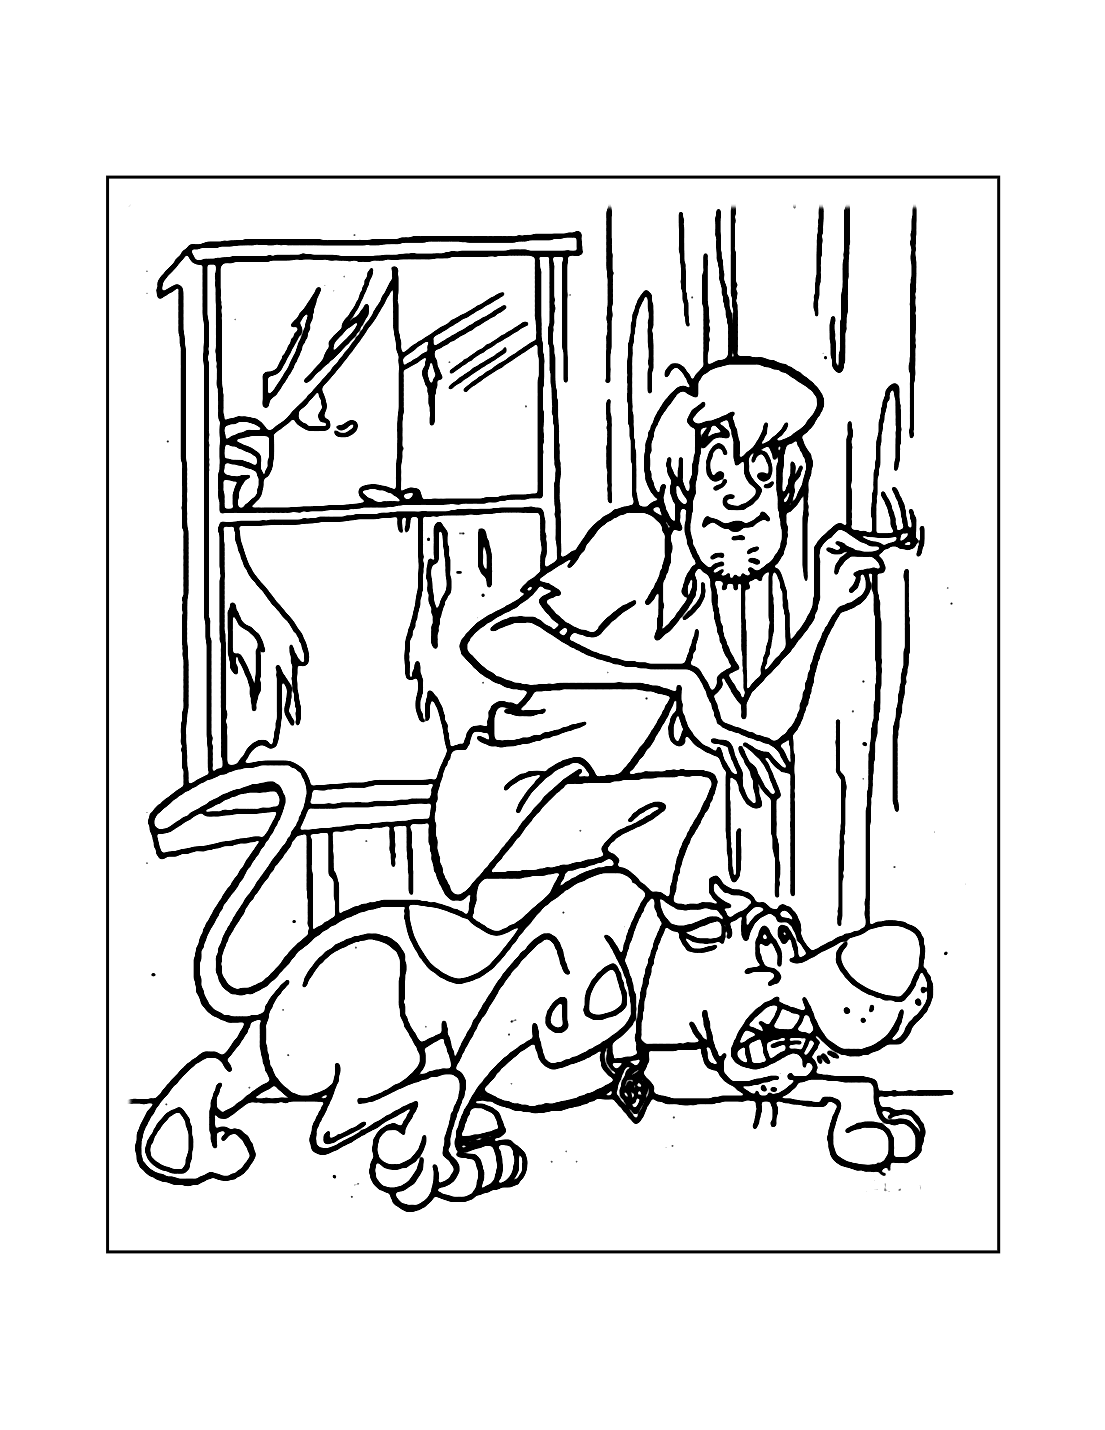 Shaggy And Scooby Doo Coloring Pages